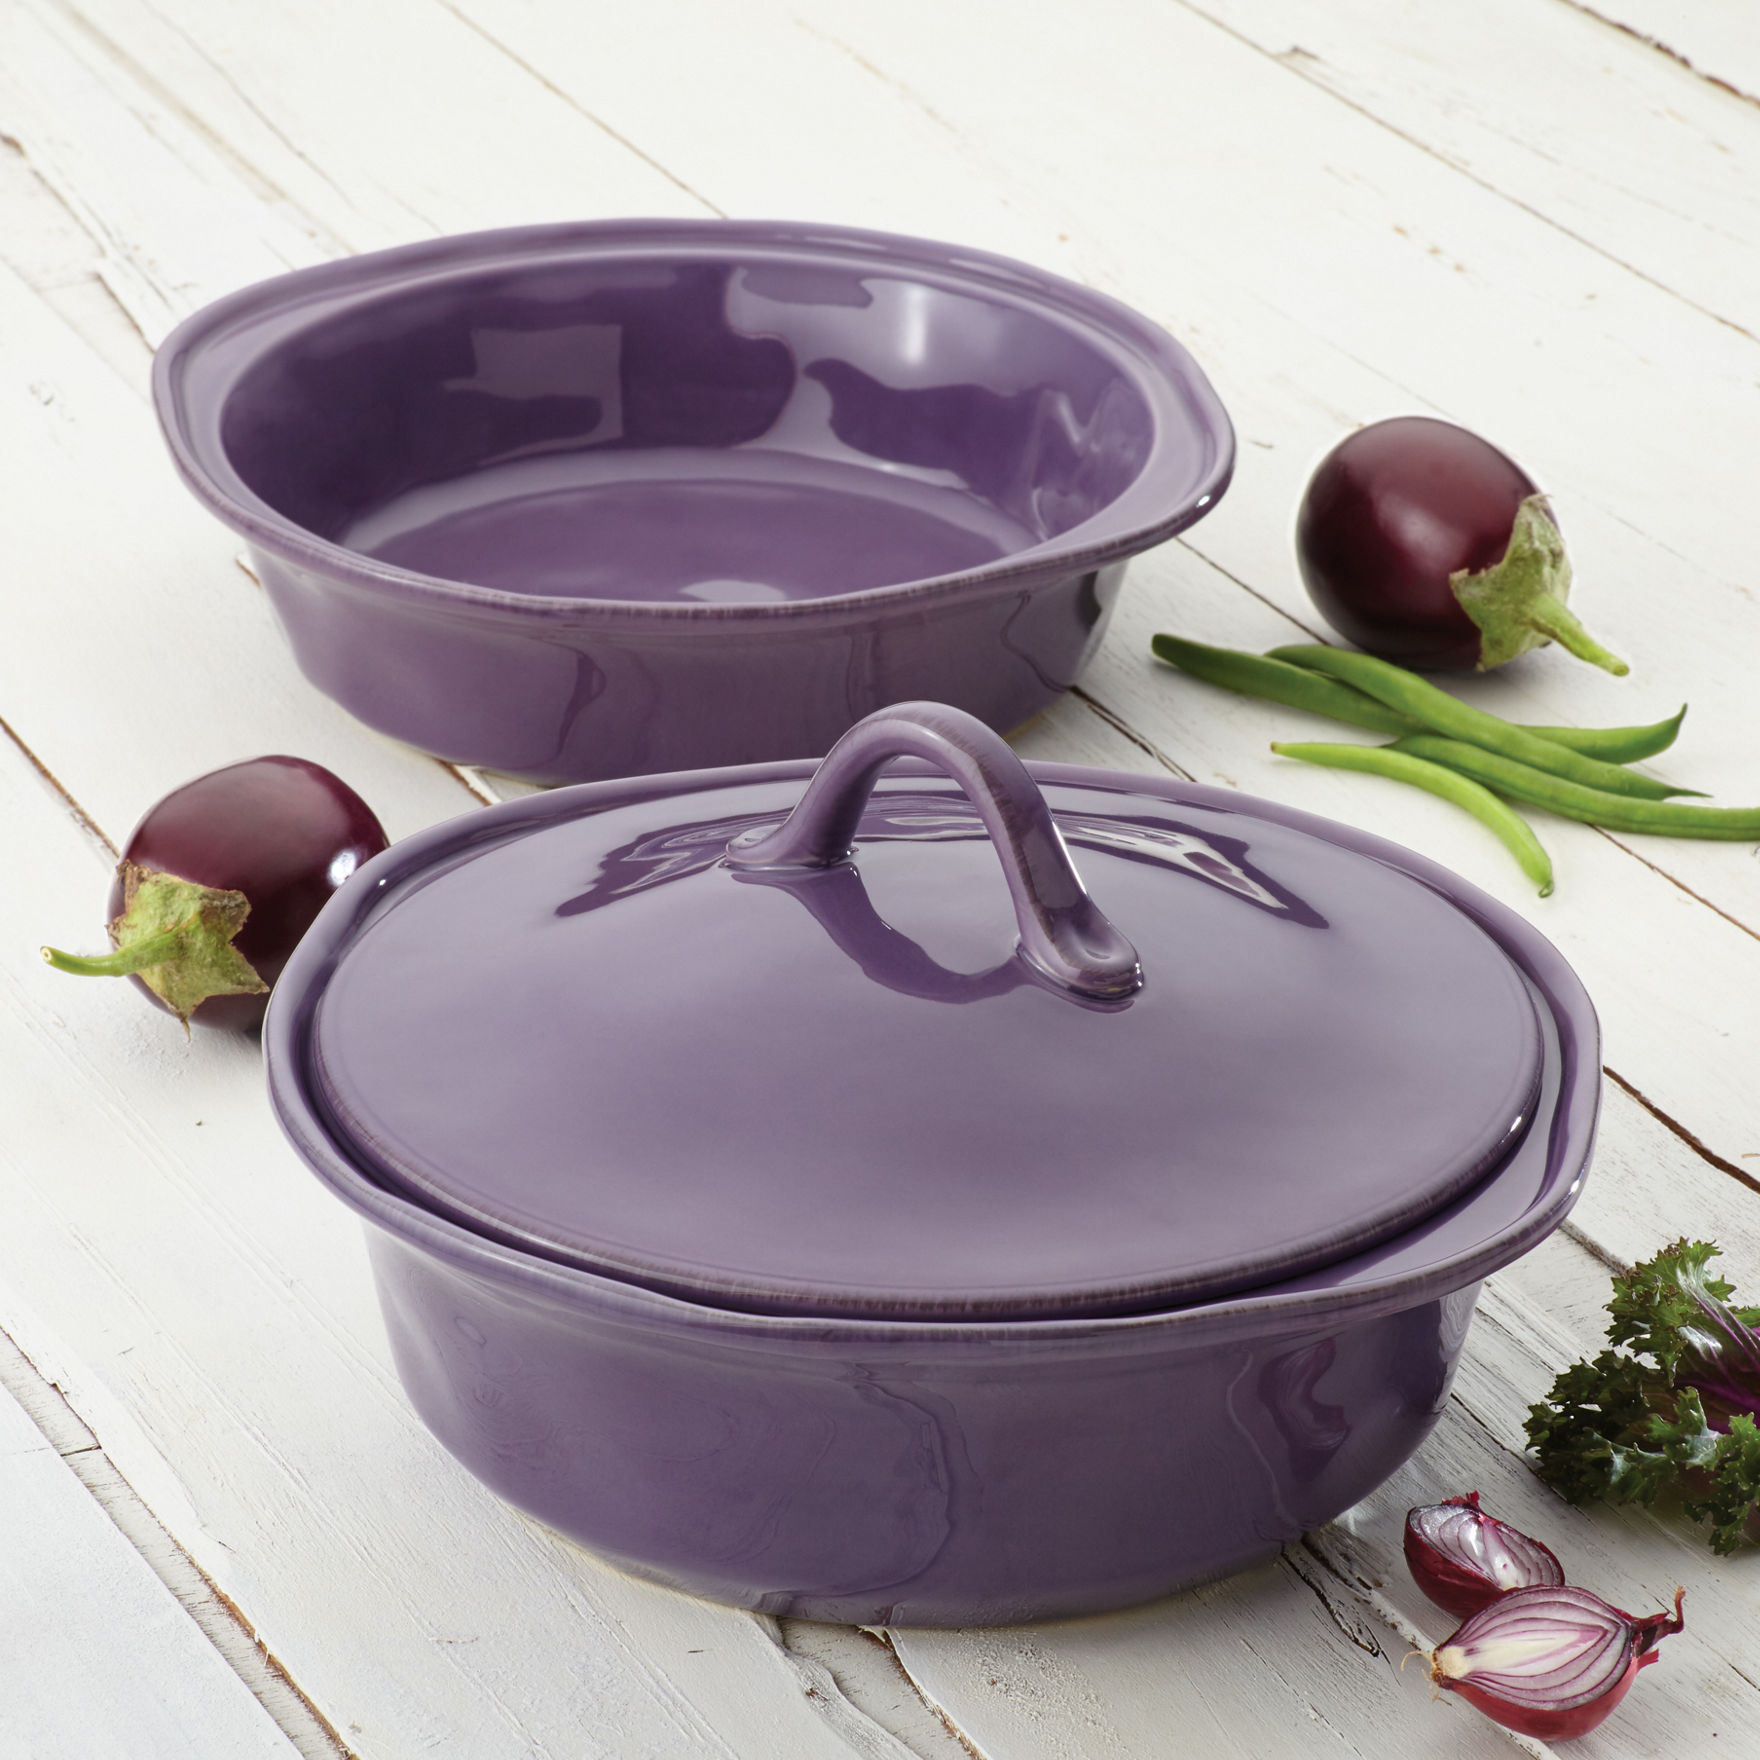 Rachael Ray Lavender Baking & Casserole Dishes Cookware Sets Bakeware